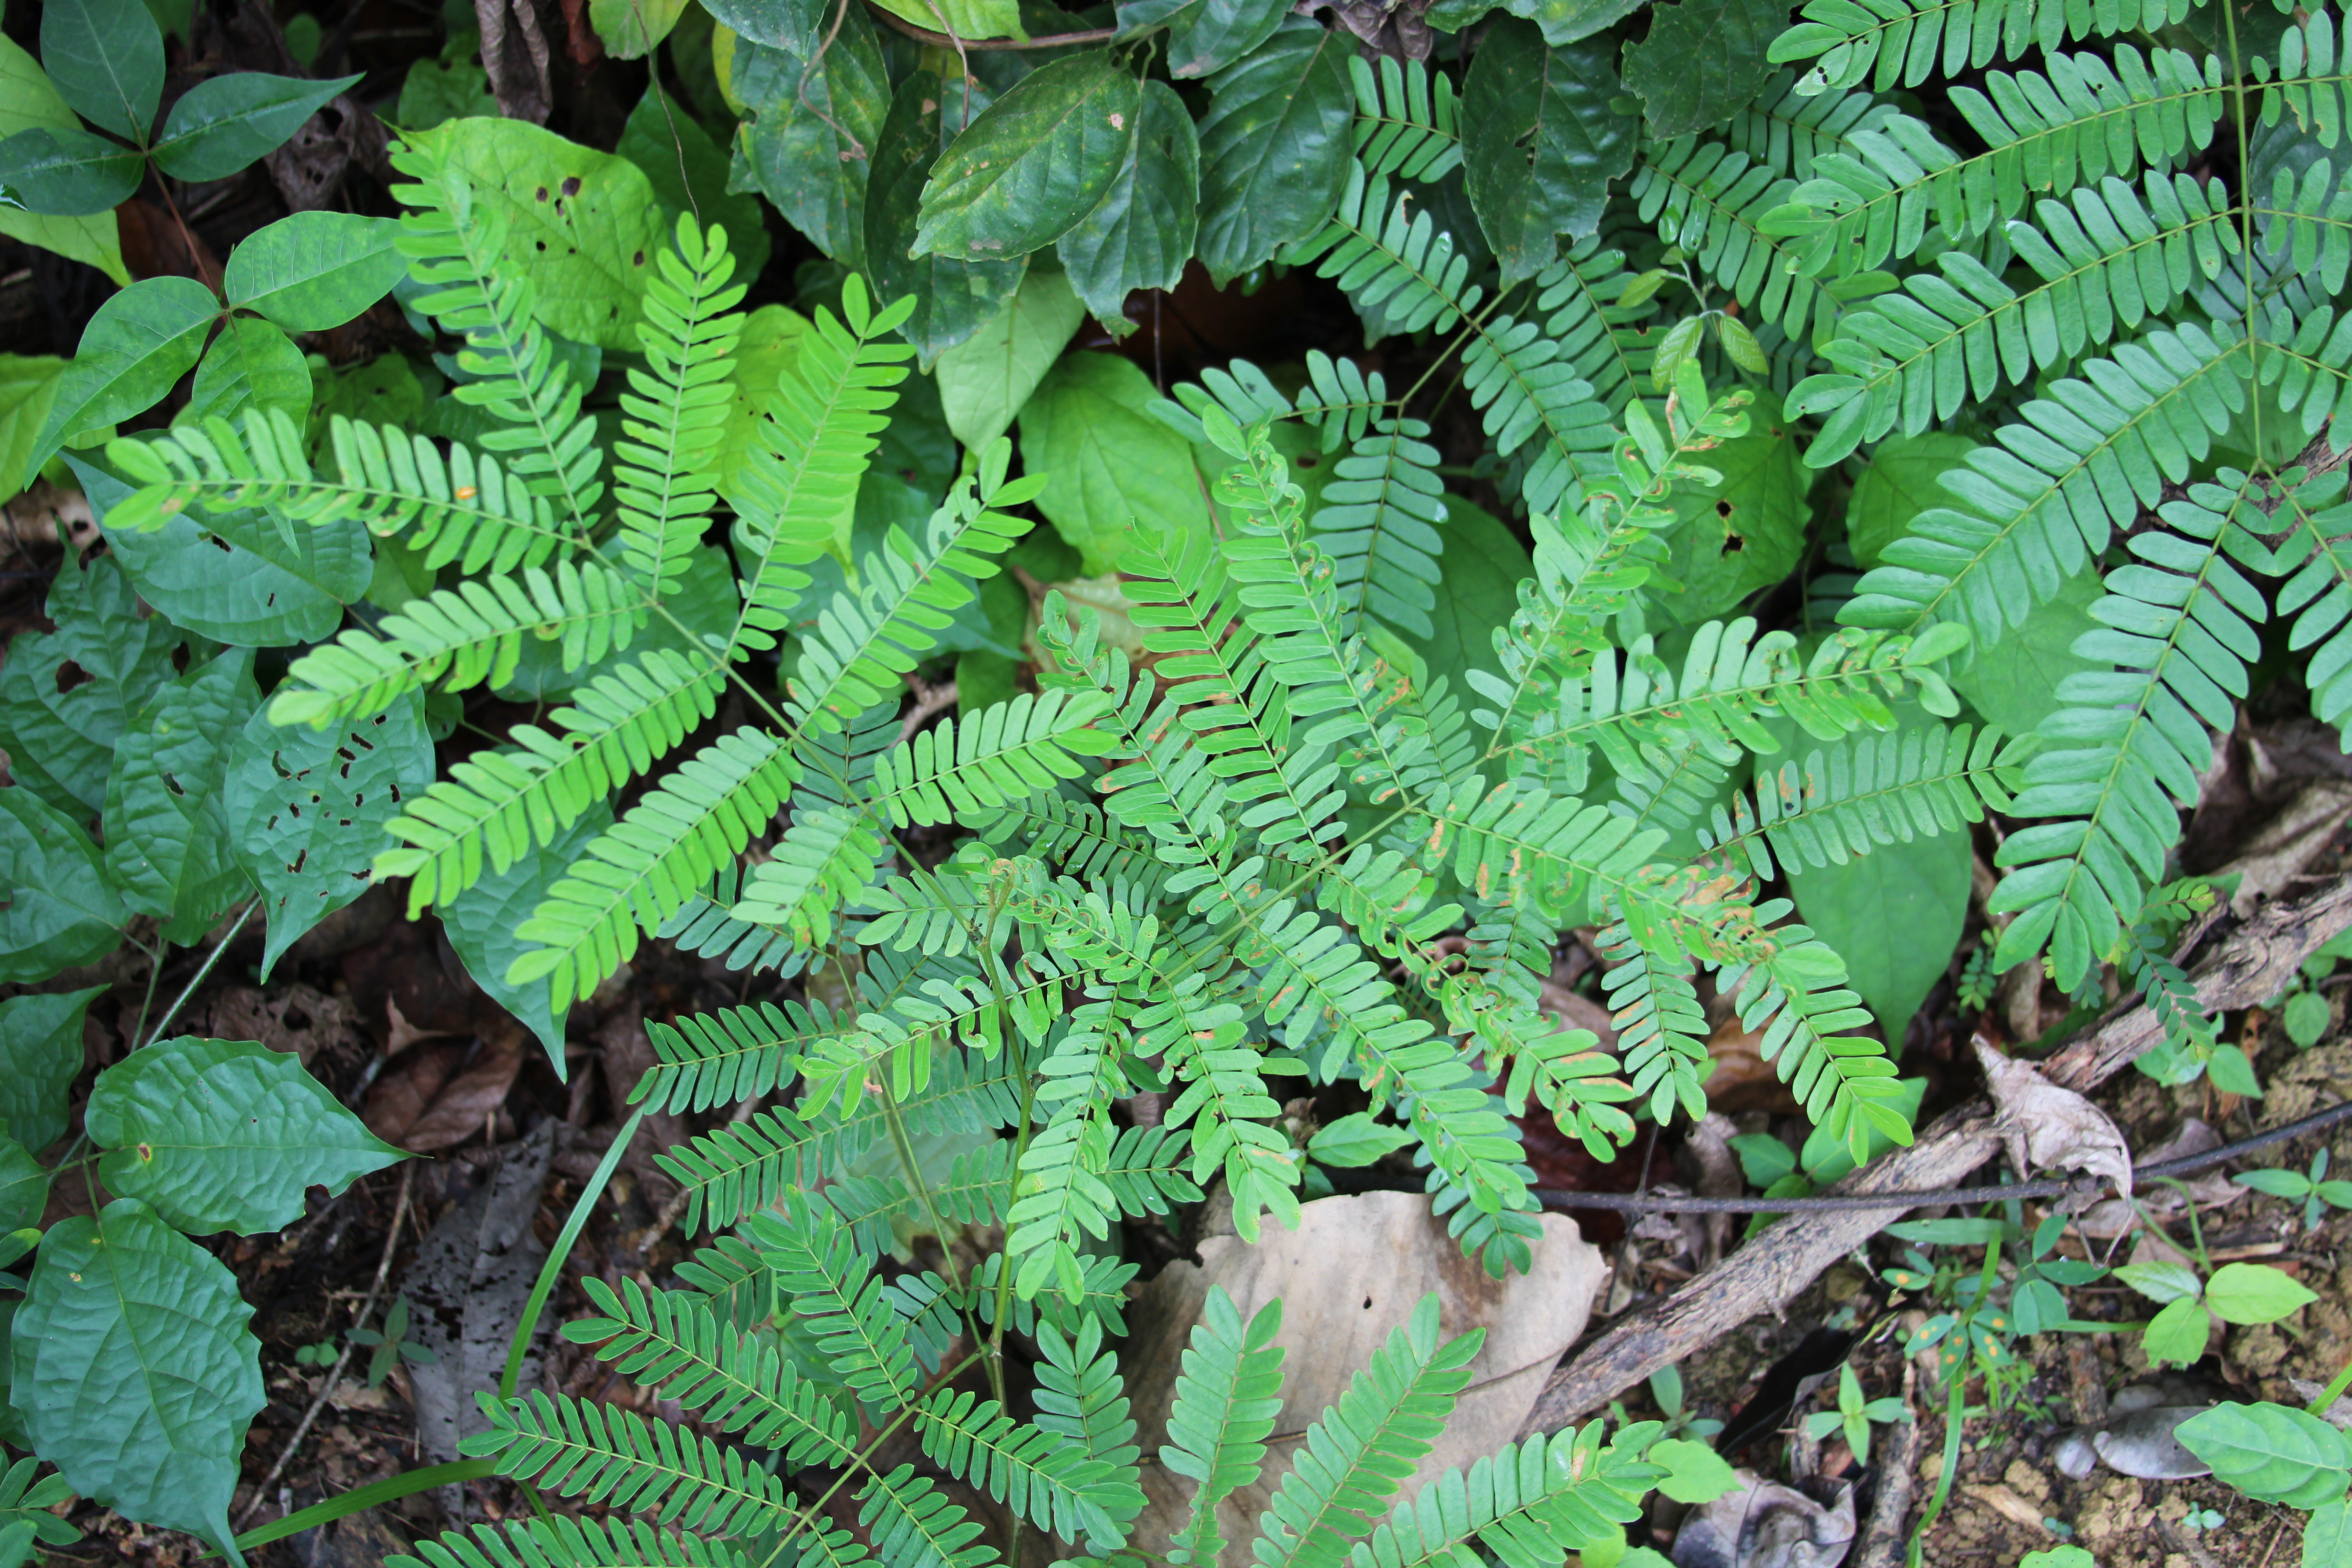 Rainforest Ground Foliage